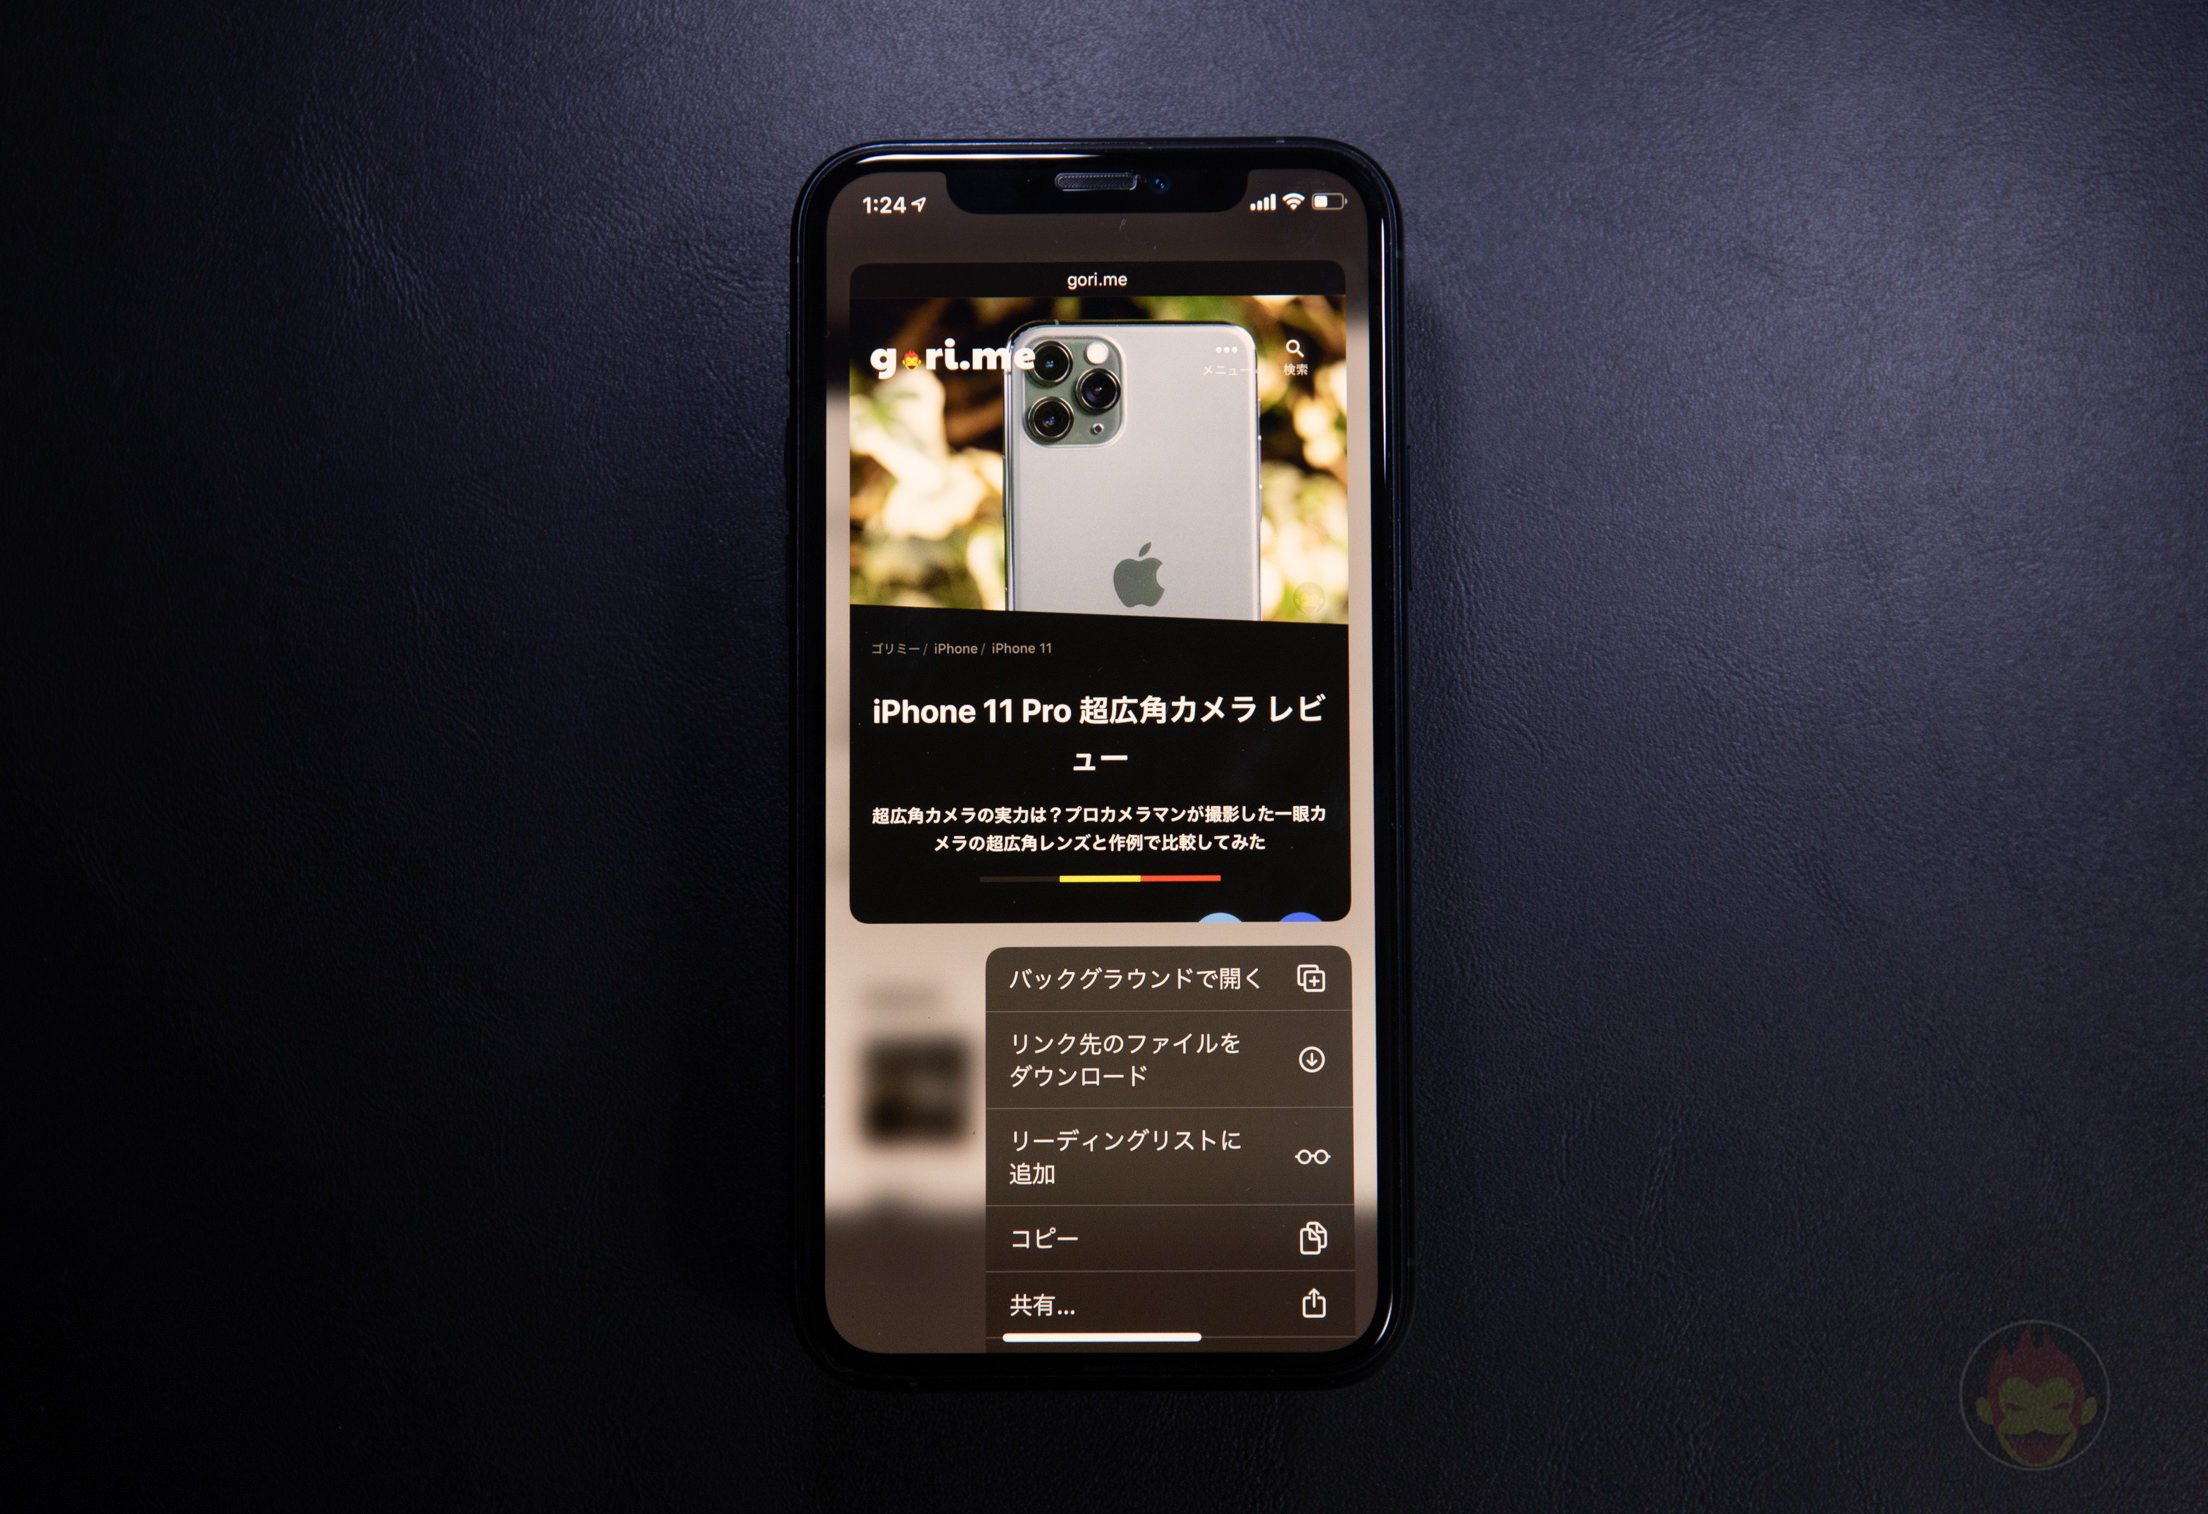 iPhone11Pro-Review-Usage-in-Real-Life-02.jpg